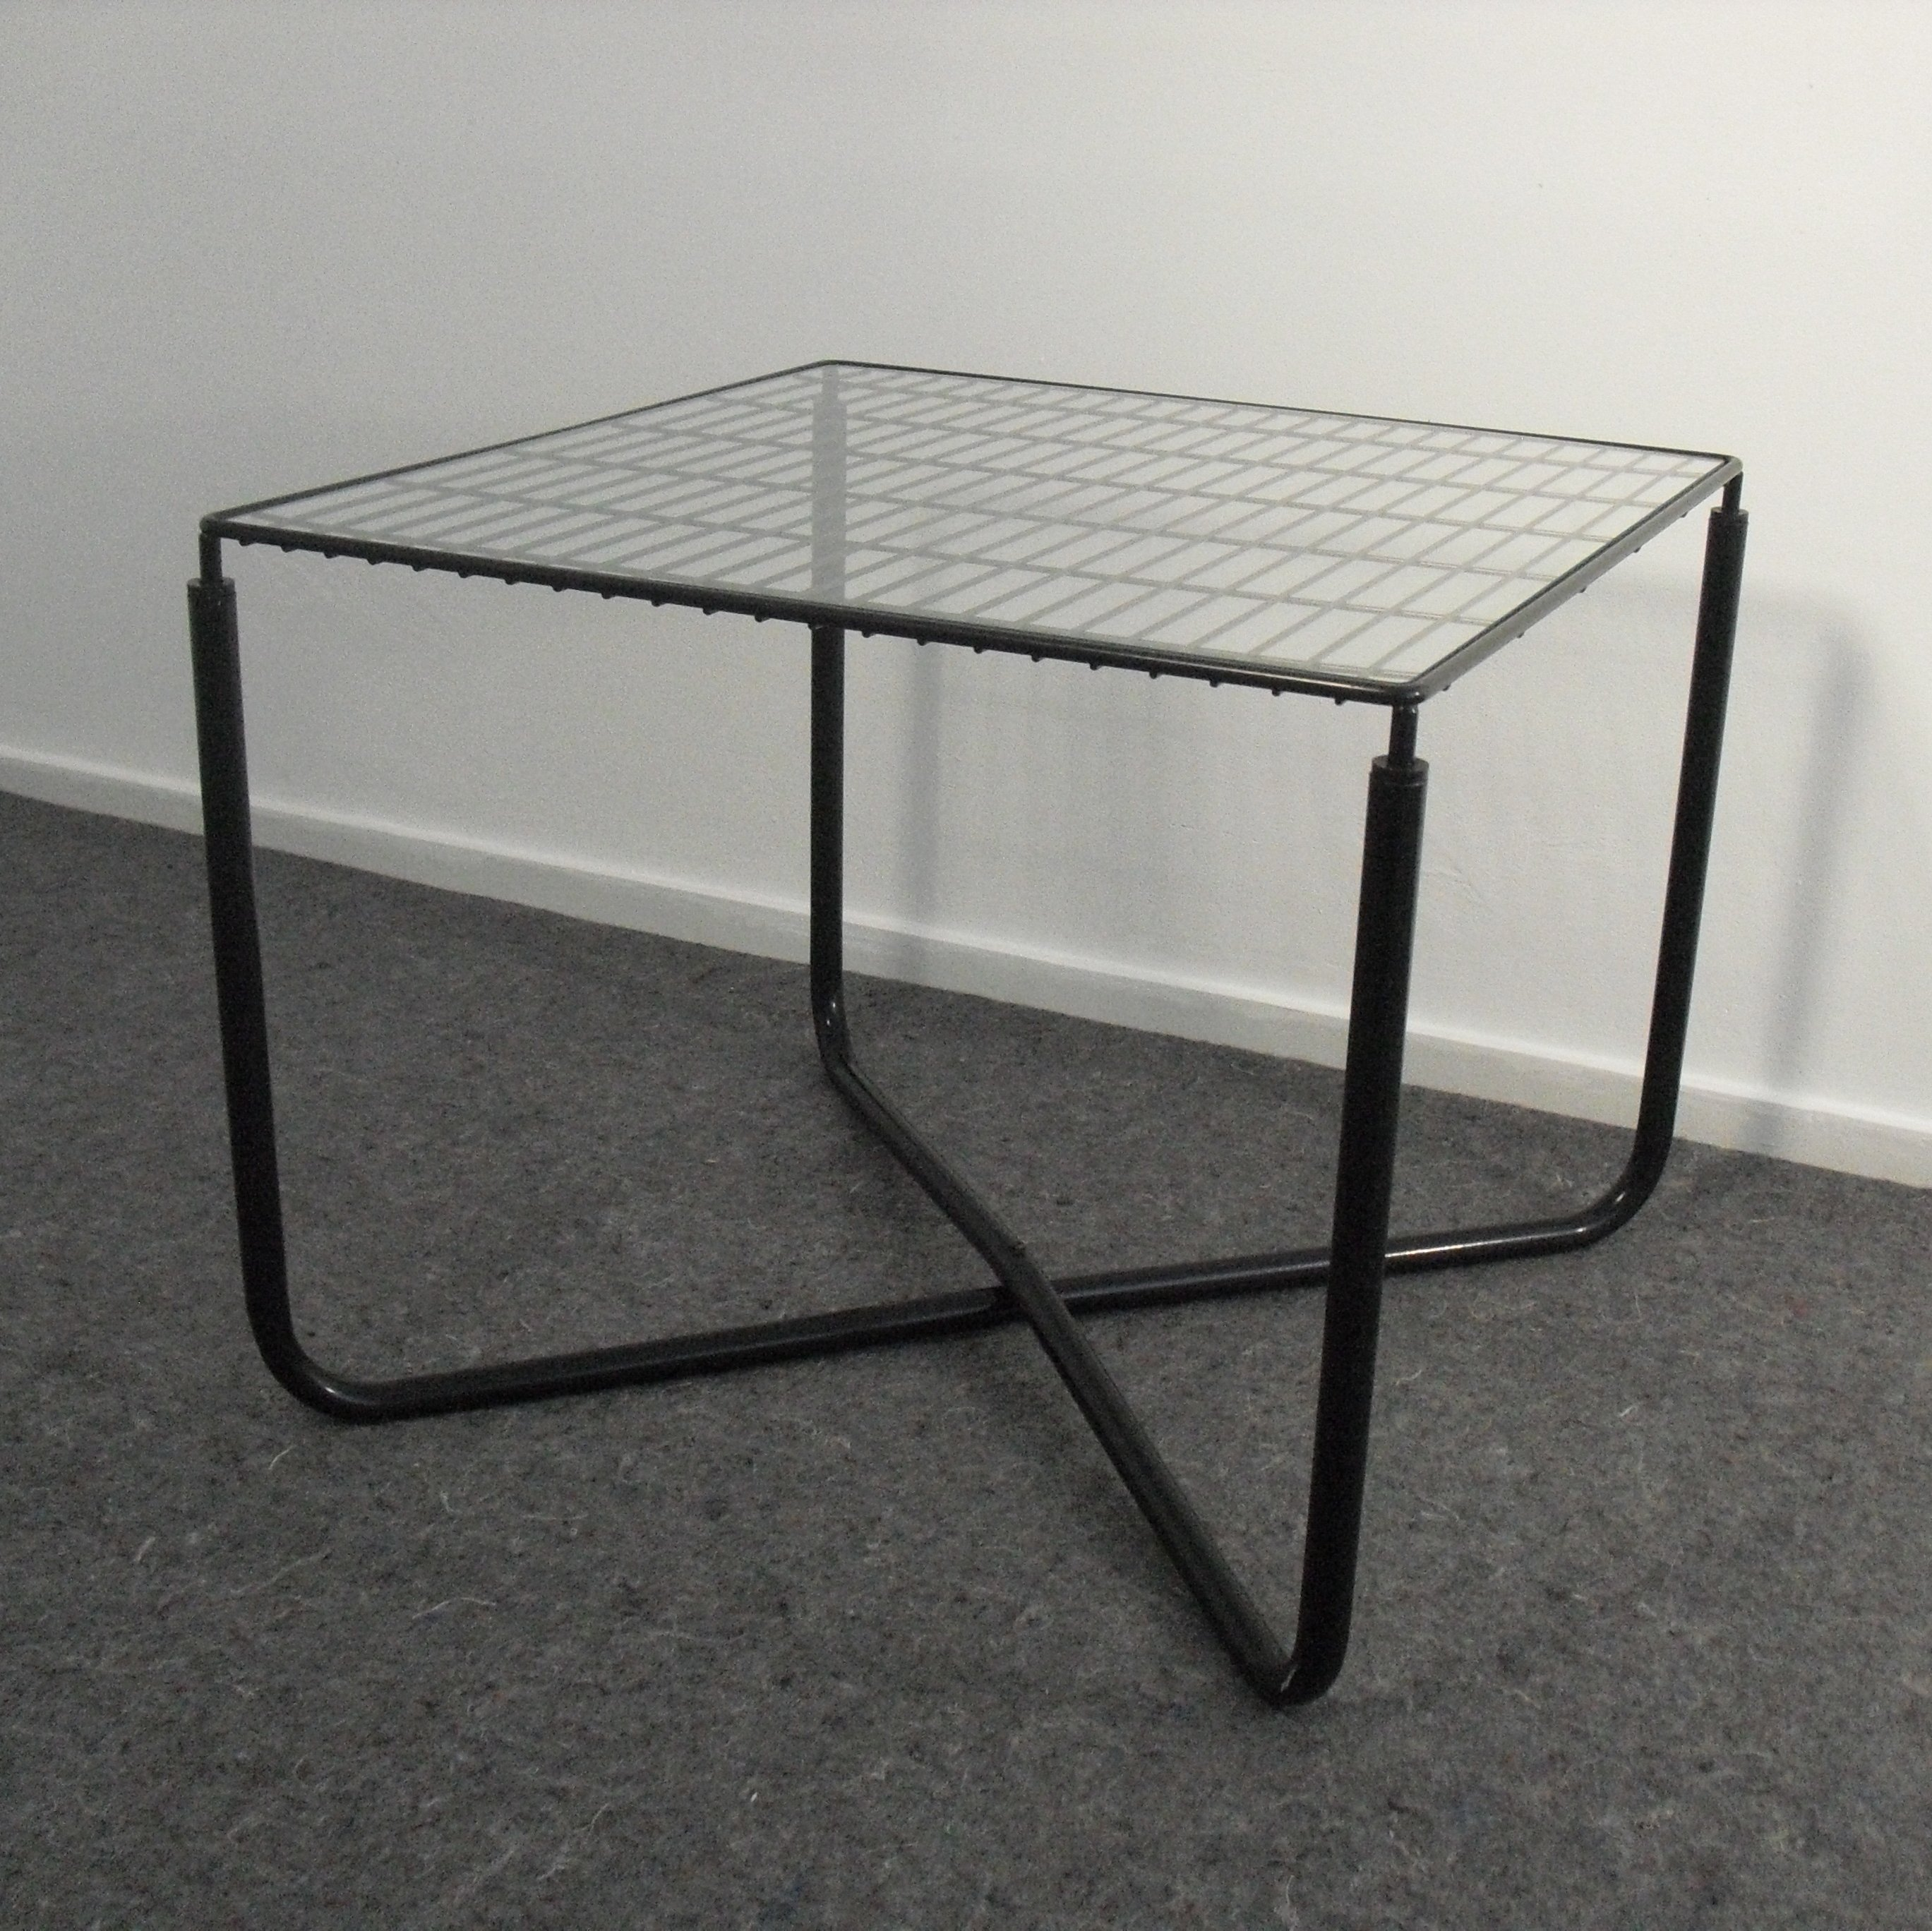 Jarpen Coffee Table By Niels Gammelgaard For Ikea 1980s